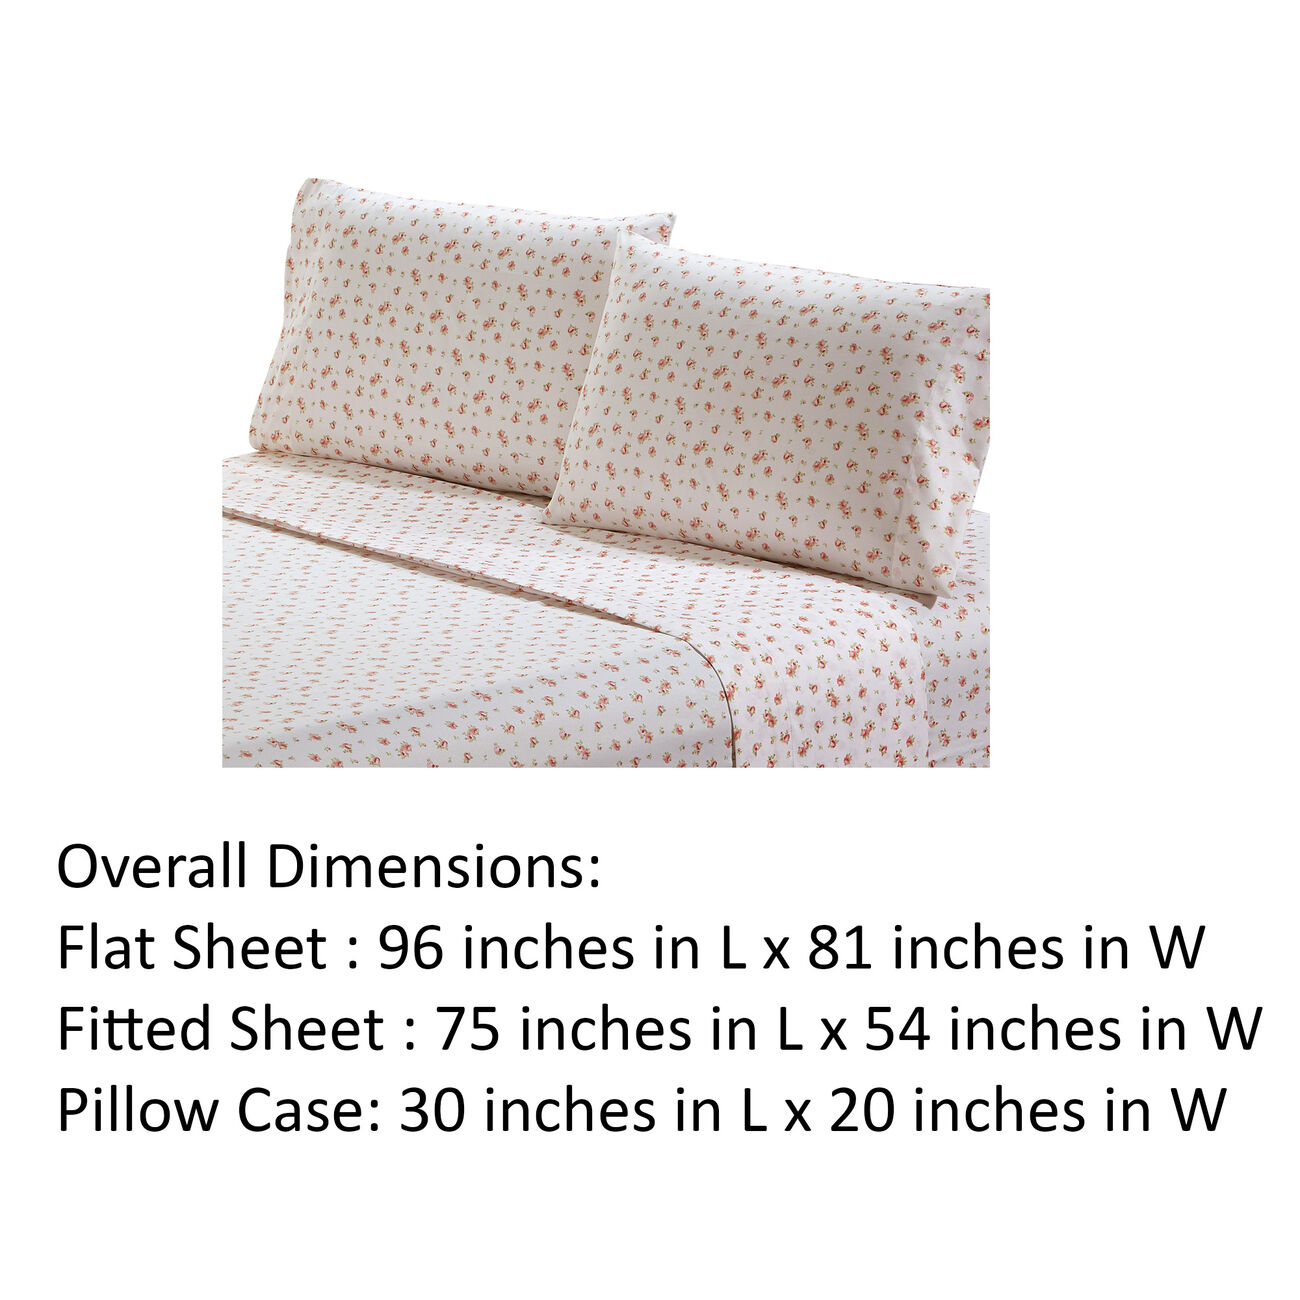 Melun 4 Piece Full Size Sheet Set with Rose Sketch The Urban Port, Pink and White